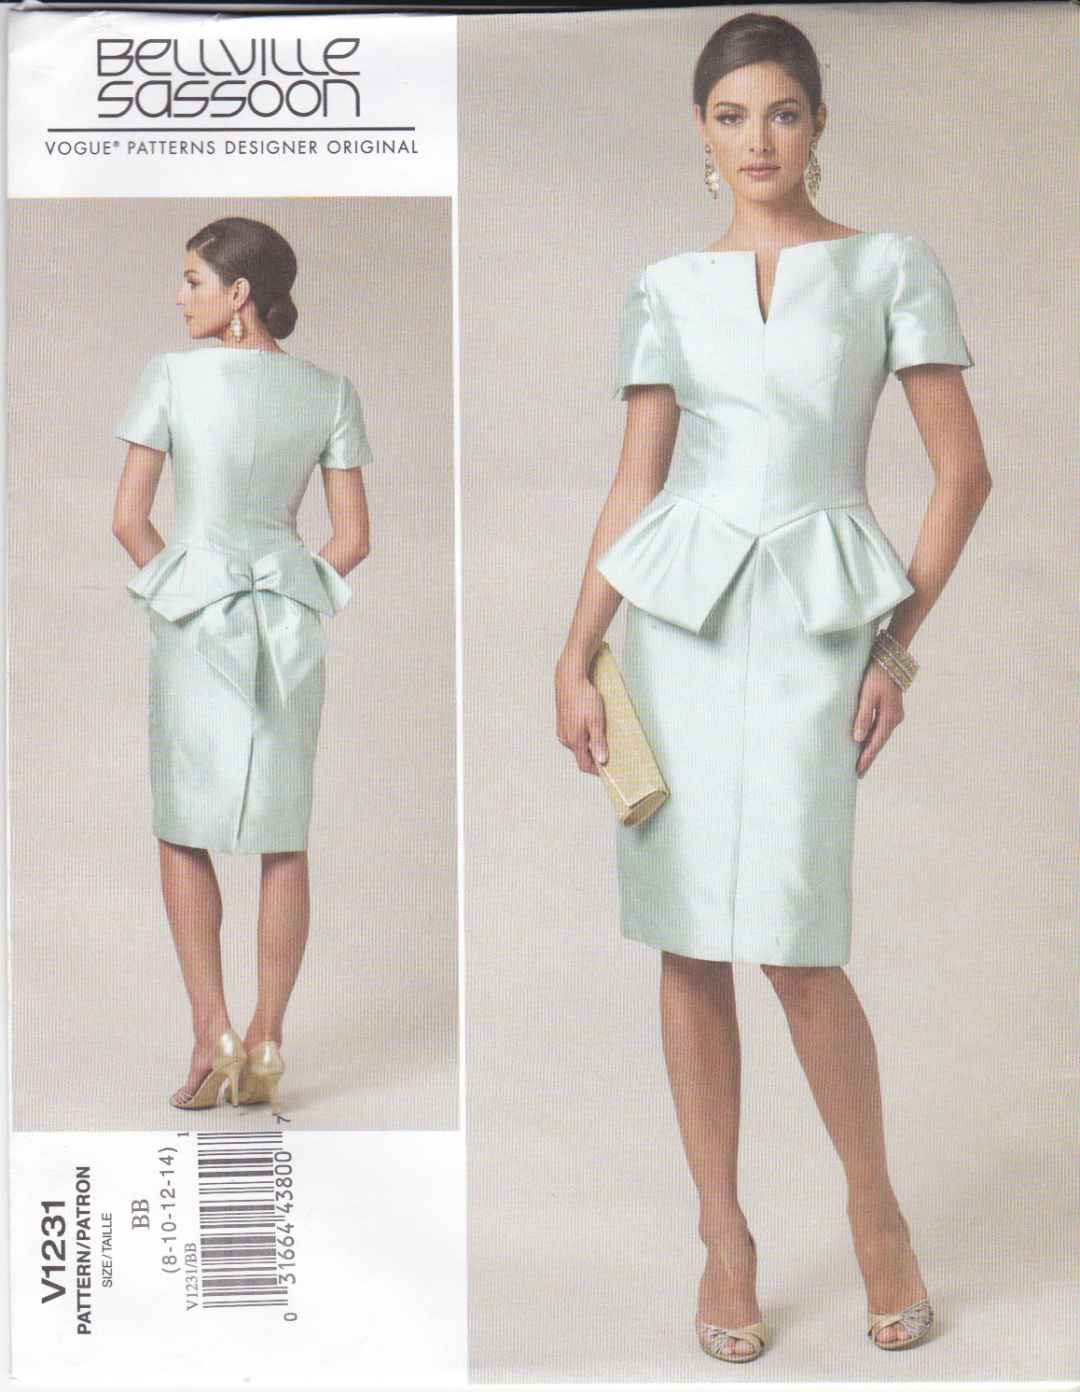 Vogue Sewing Pattern 1231 V1231 Misses Size 8-14 Bellville Sassoon Lined Straight Dress Peplum